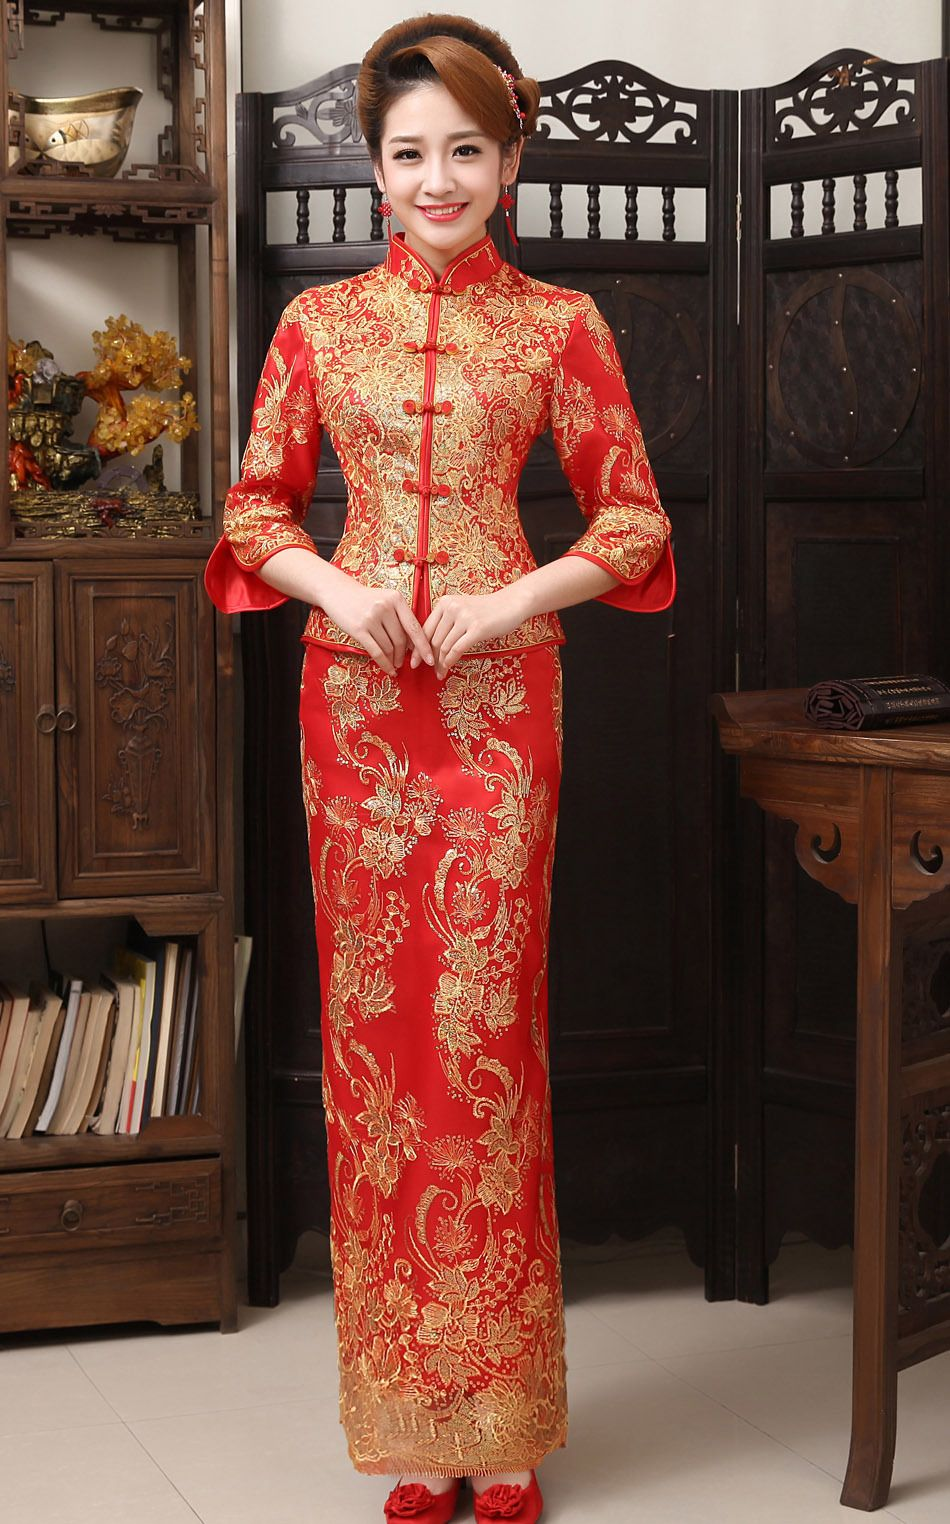 Cheongsam Online Wedding Dresses Fishtail Long Dress Chinese Clothing On Sale Chinese Style Dress Traditional Dresses Dresses [ 1524 x 950 Pixel ]